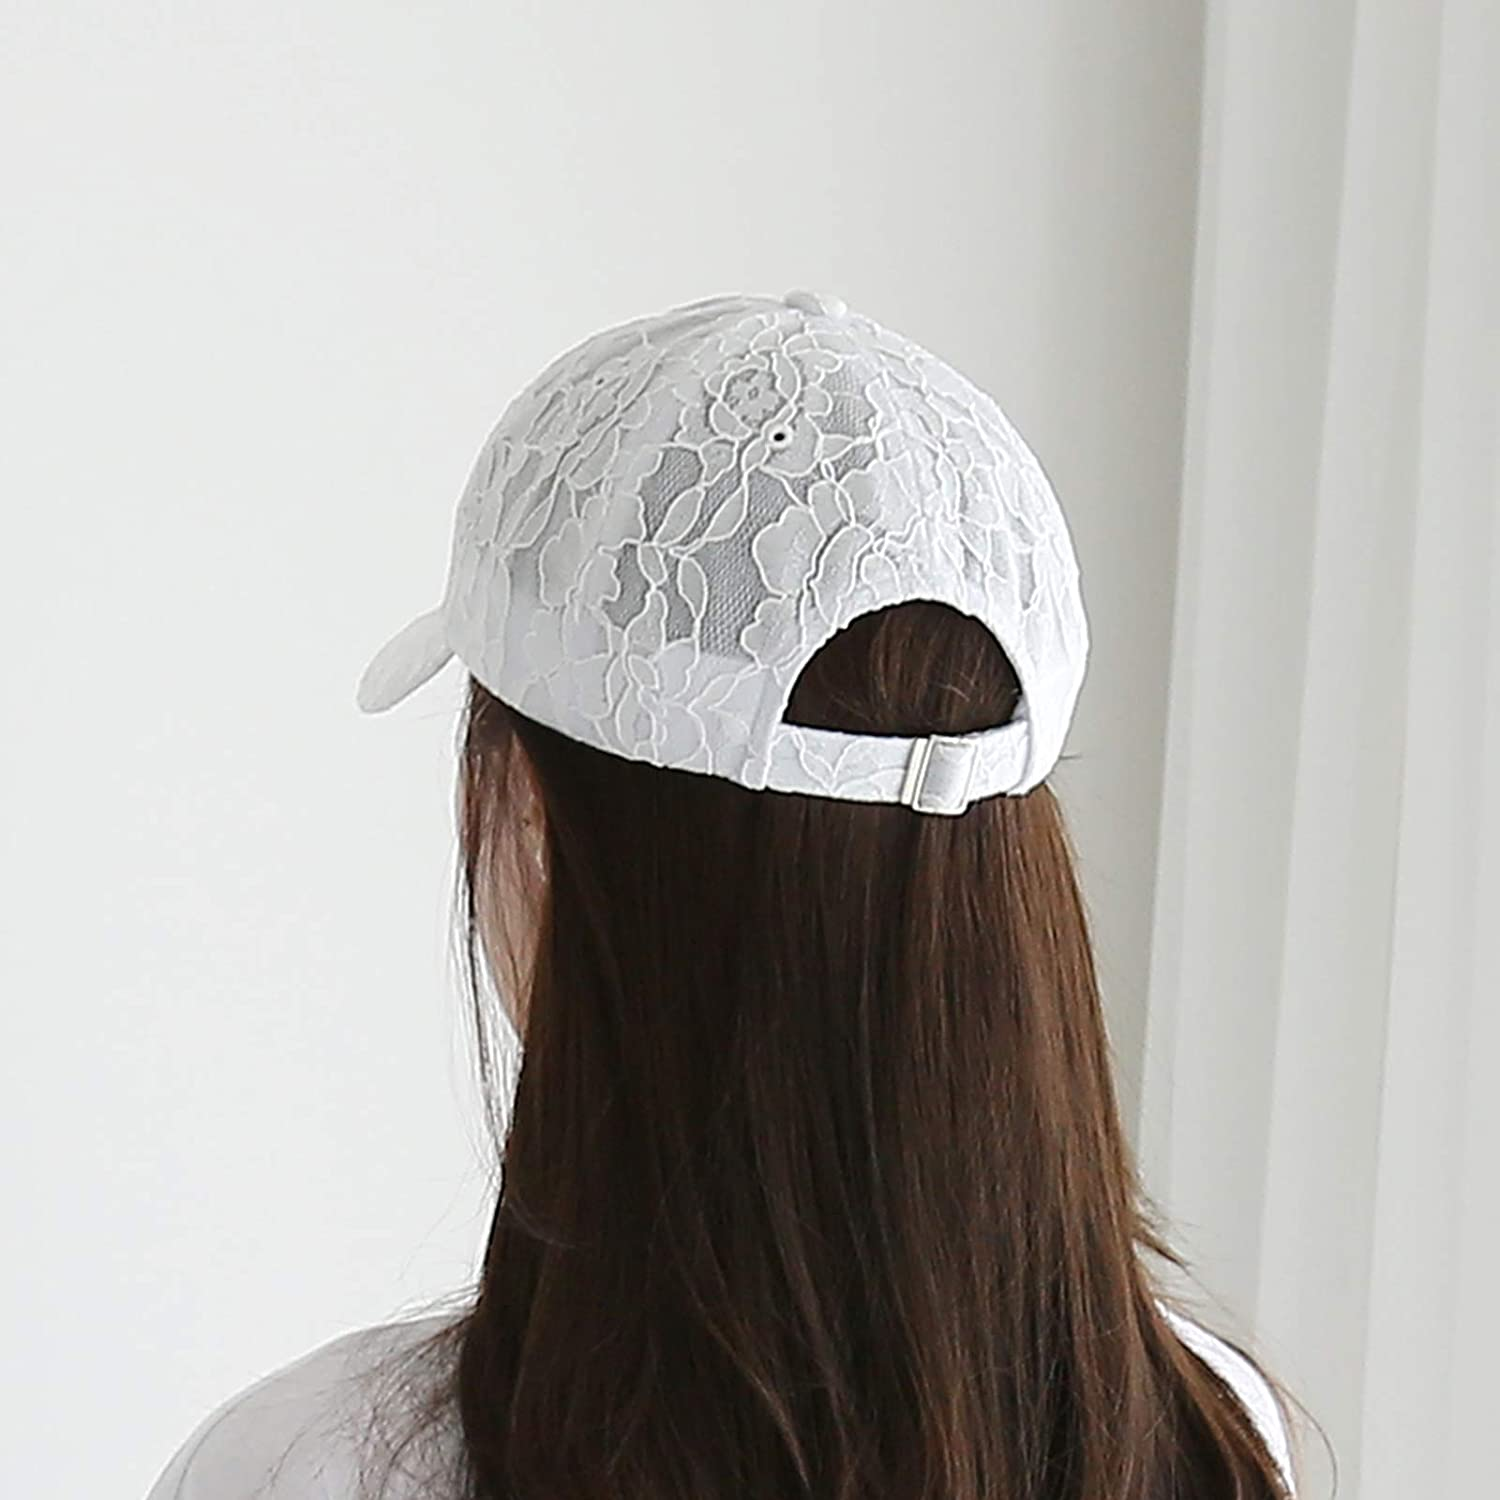 WITHMOONS Womens Floral Lace Panel Crochet Baseball Cap Embroidery Hat KR11200